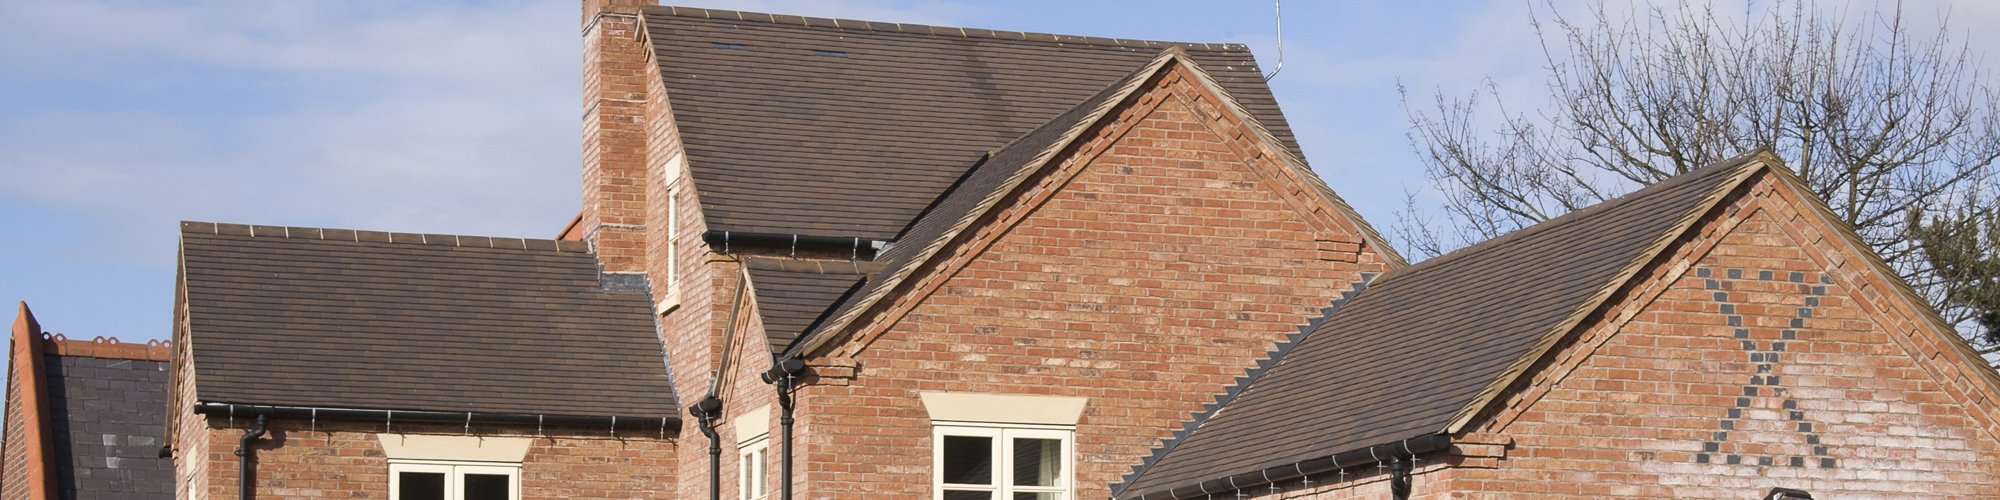 sandtoft roofing, wienerberger roofing, roofing shrewsbury, roofing chester, welsh roofing